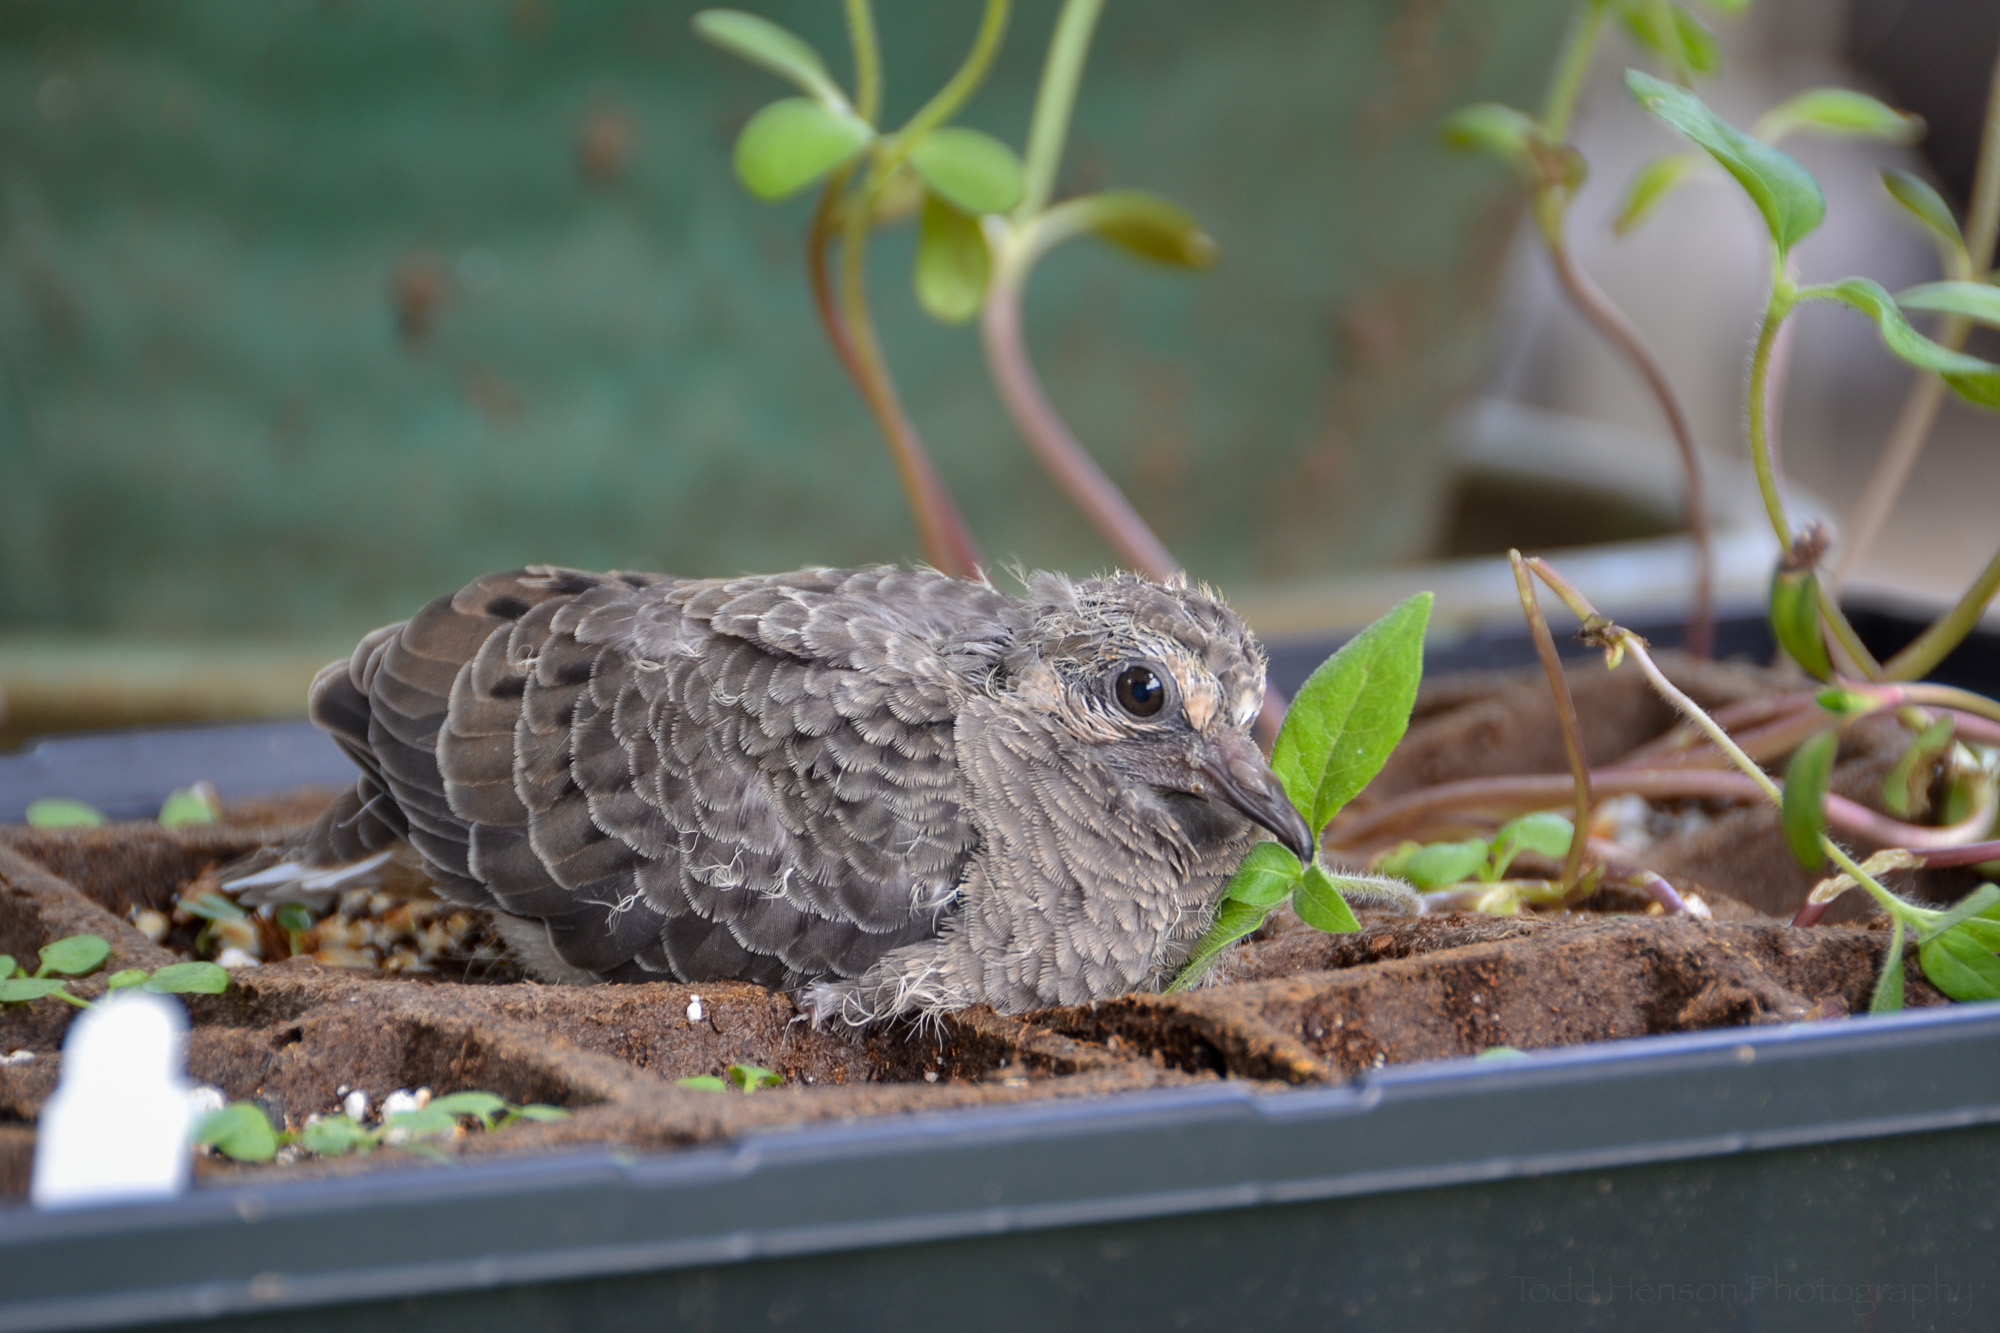 A parting shot of the young Mourning Dove resting atop the box of sprouts.